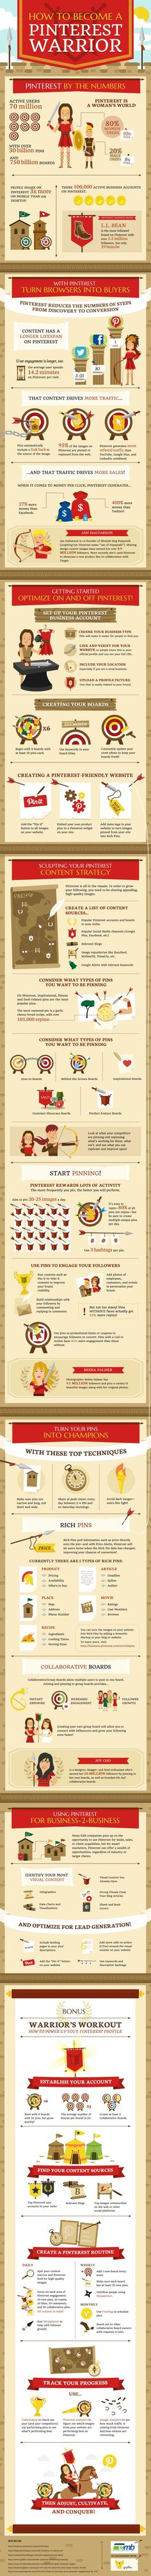 How to Become a Pinterest Warrior: Social Media Marketing on Pinterest - #infographic